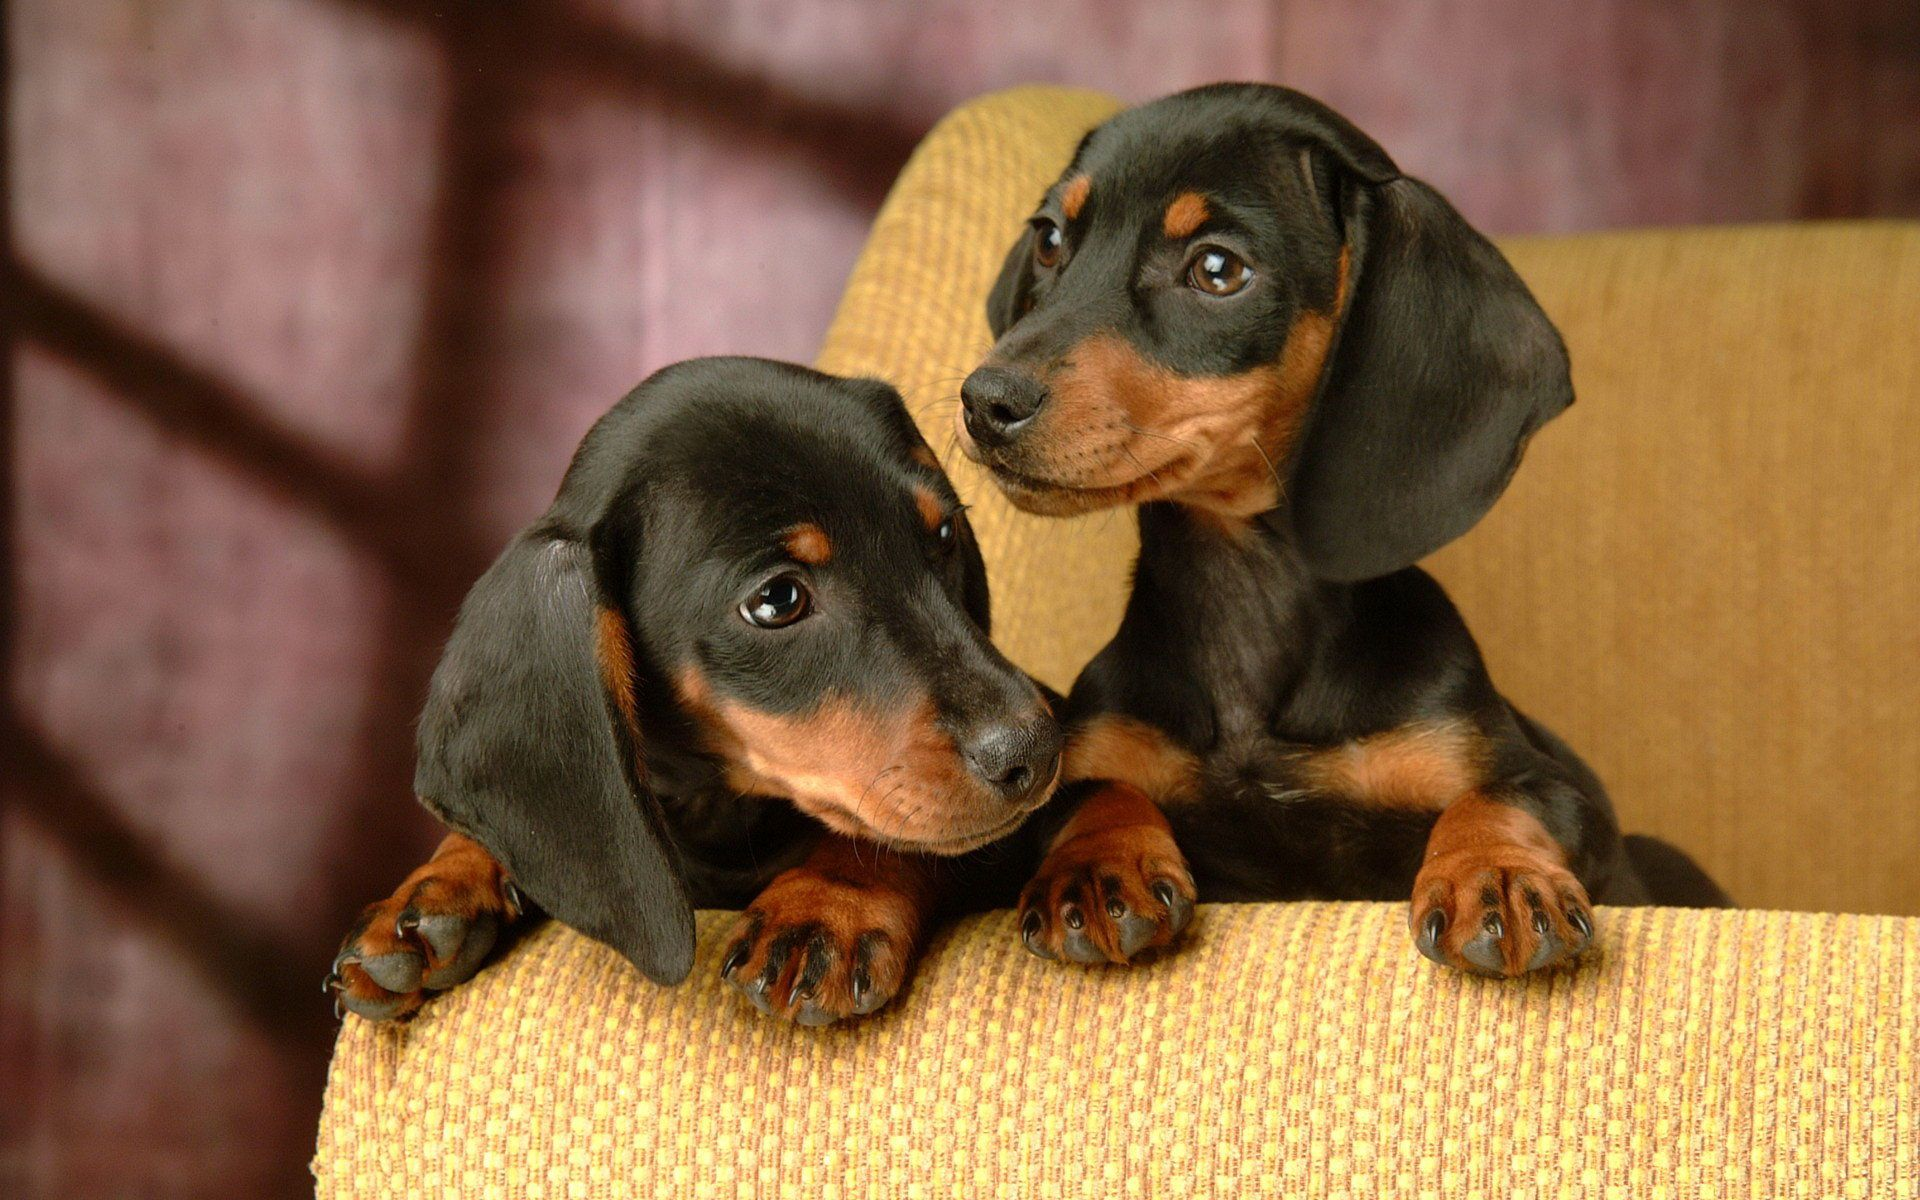 Dachshund Puppies HD Wallpaper Free Download | Projects to Try